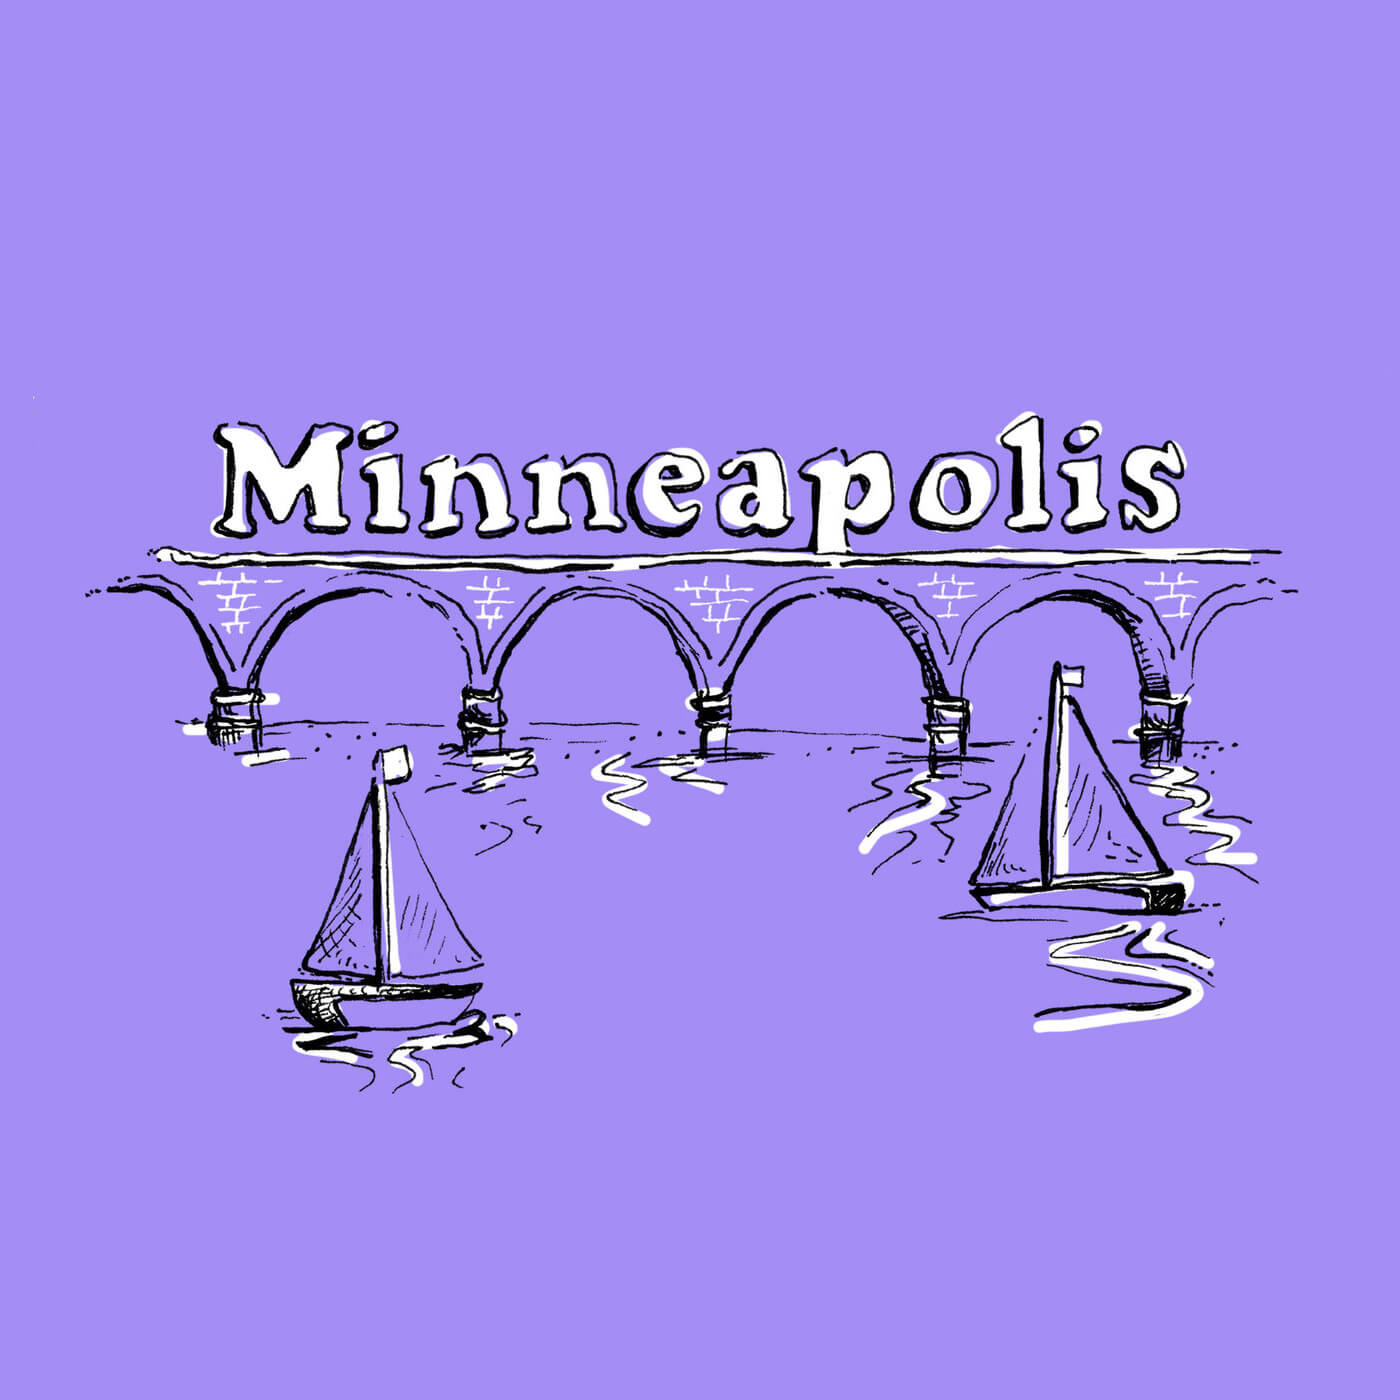 Neenah Presents Minneapolis - An illustrated guide to the land of ten thousand lakes, featuring hand-drawn neighborhood maps around Minneapolis.IllustrationView Project →